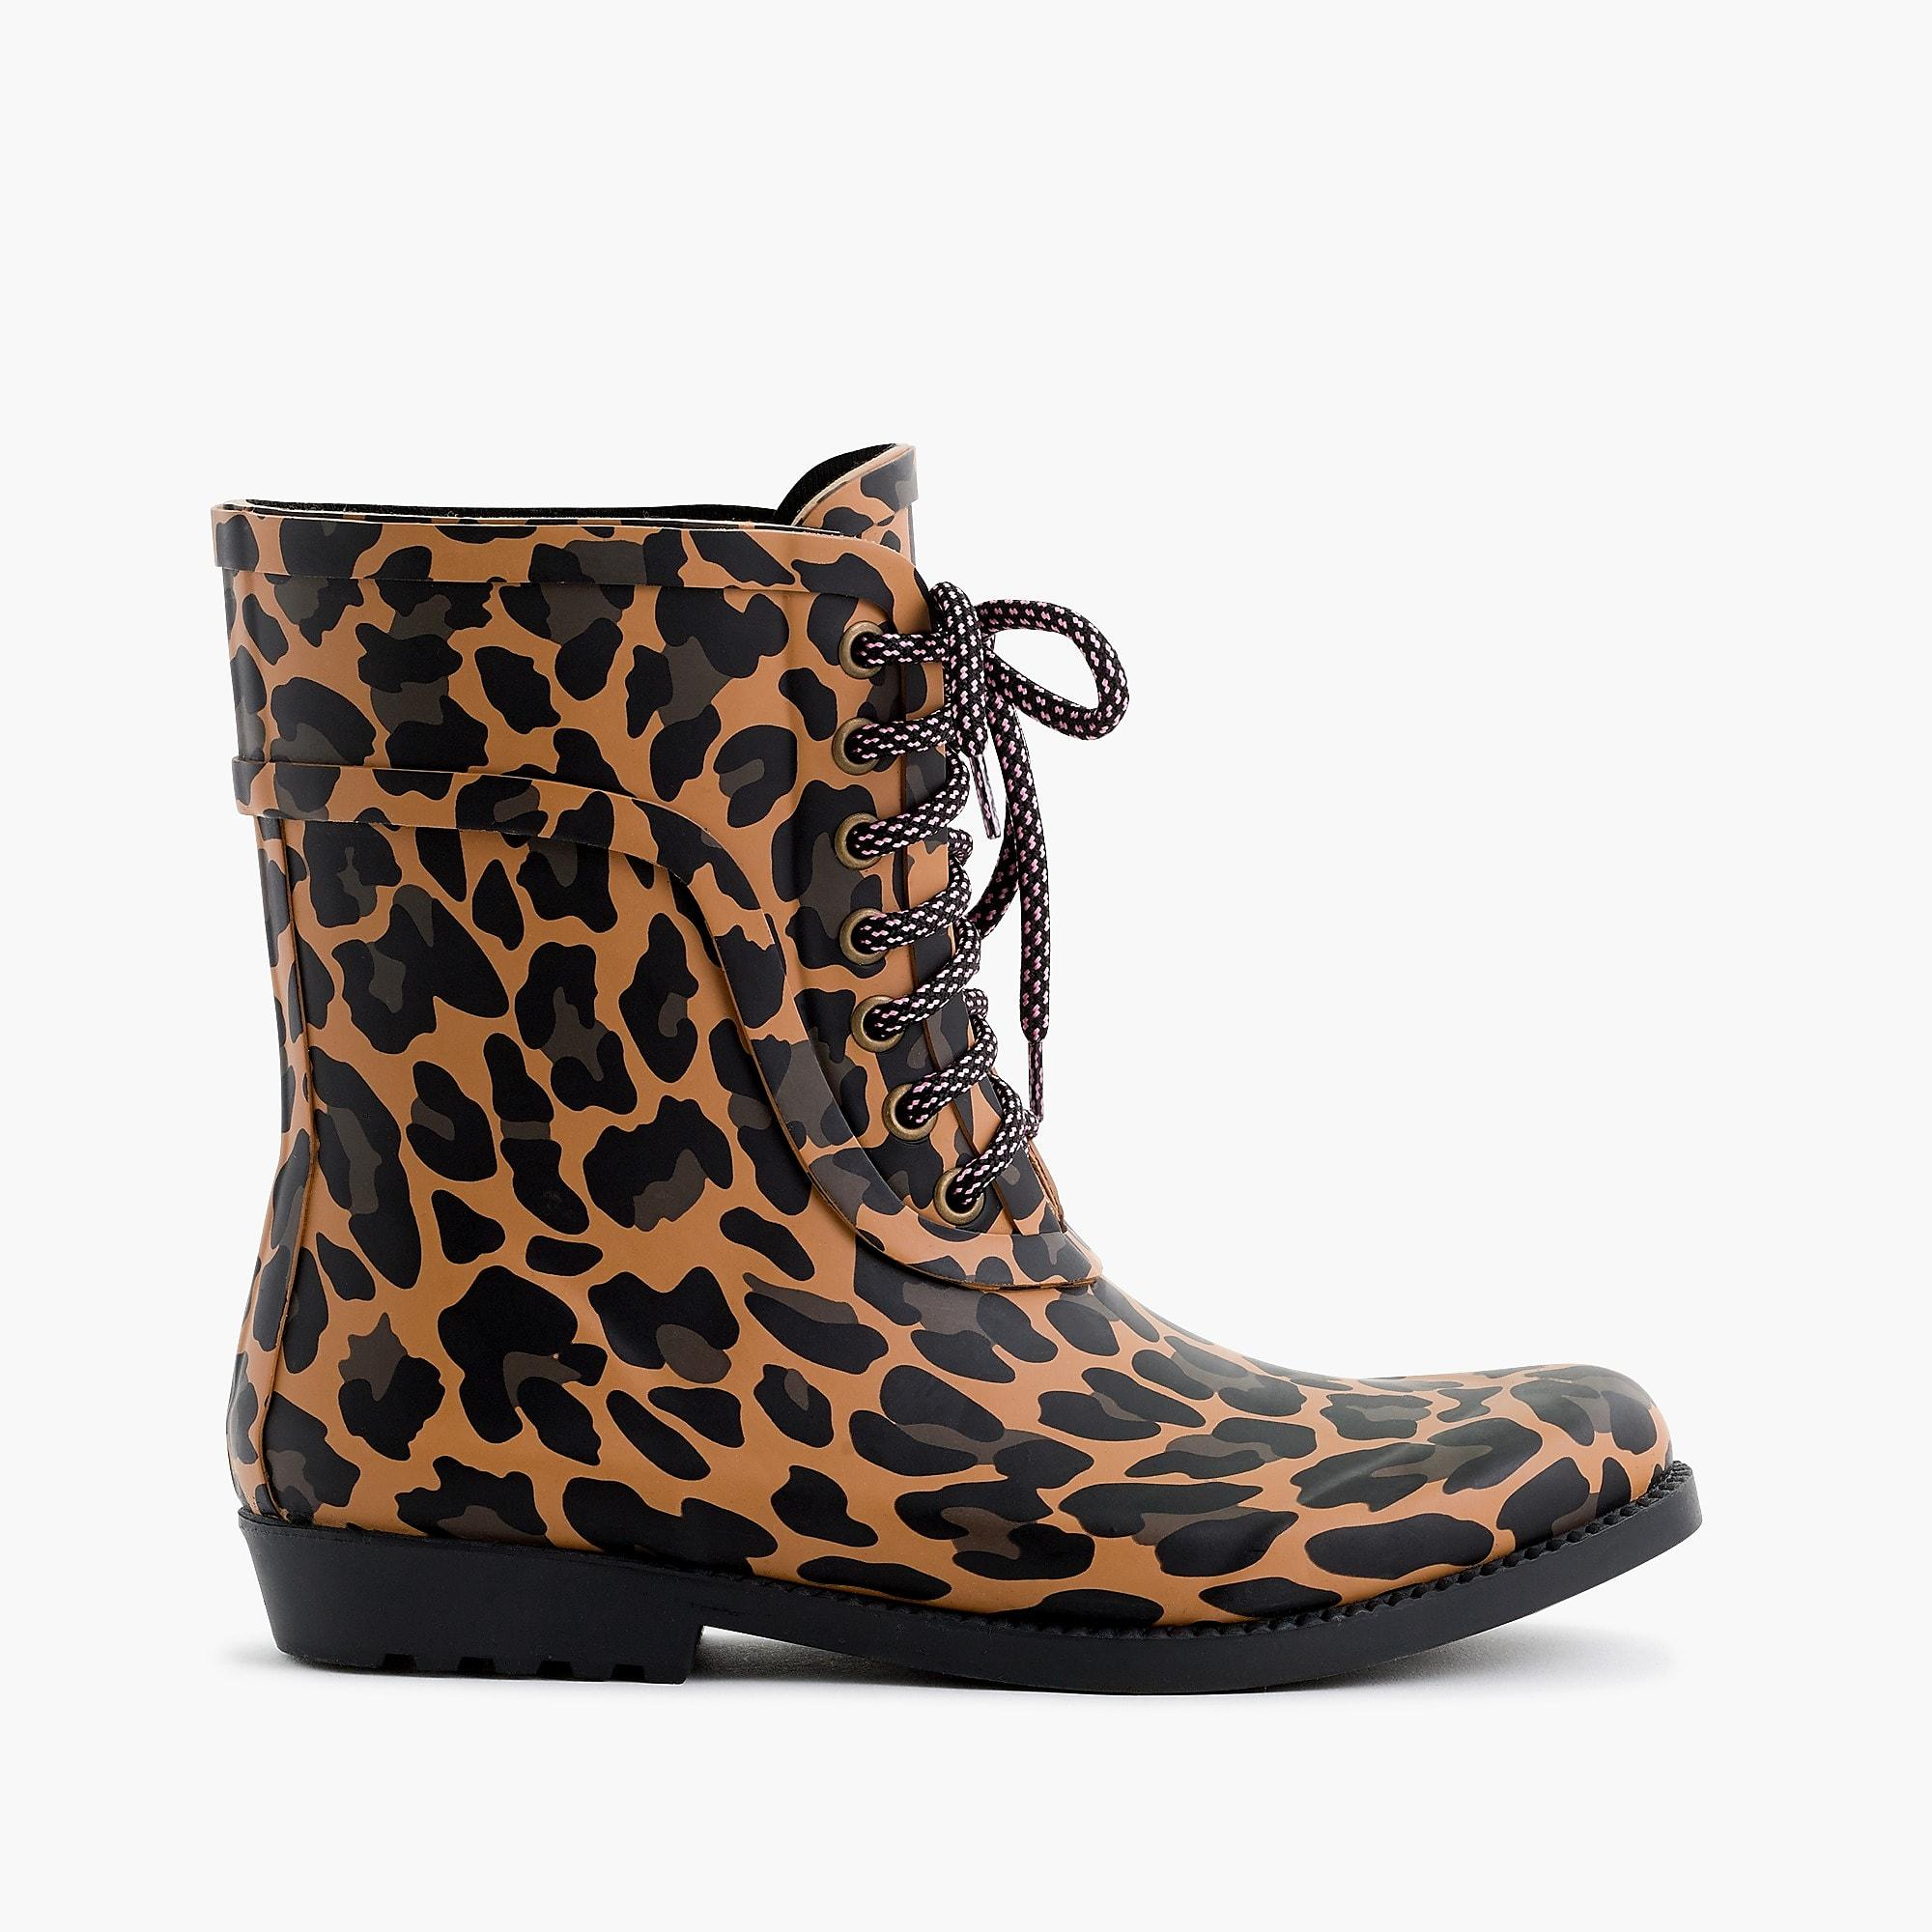 J.Crew Rubber Lace-up Rain Boots In